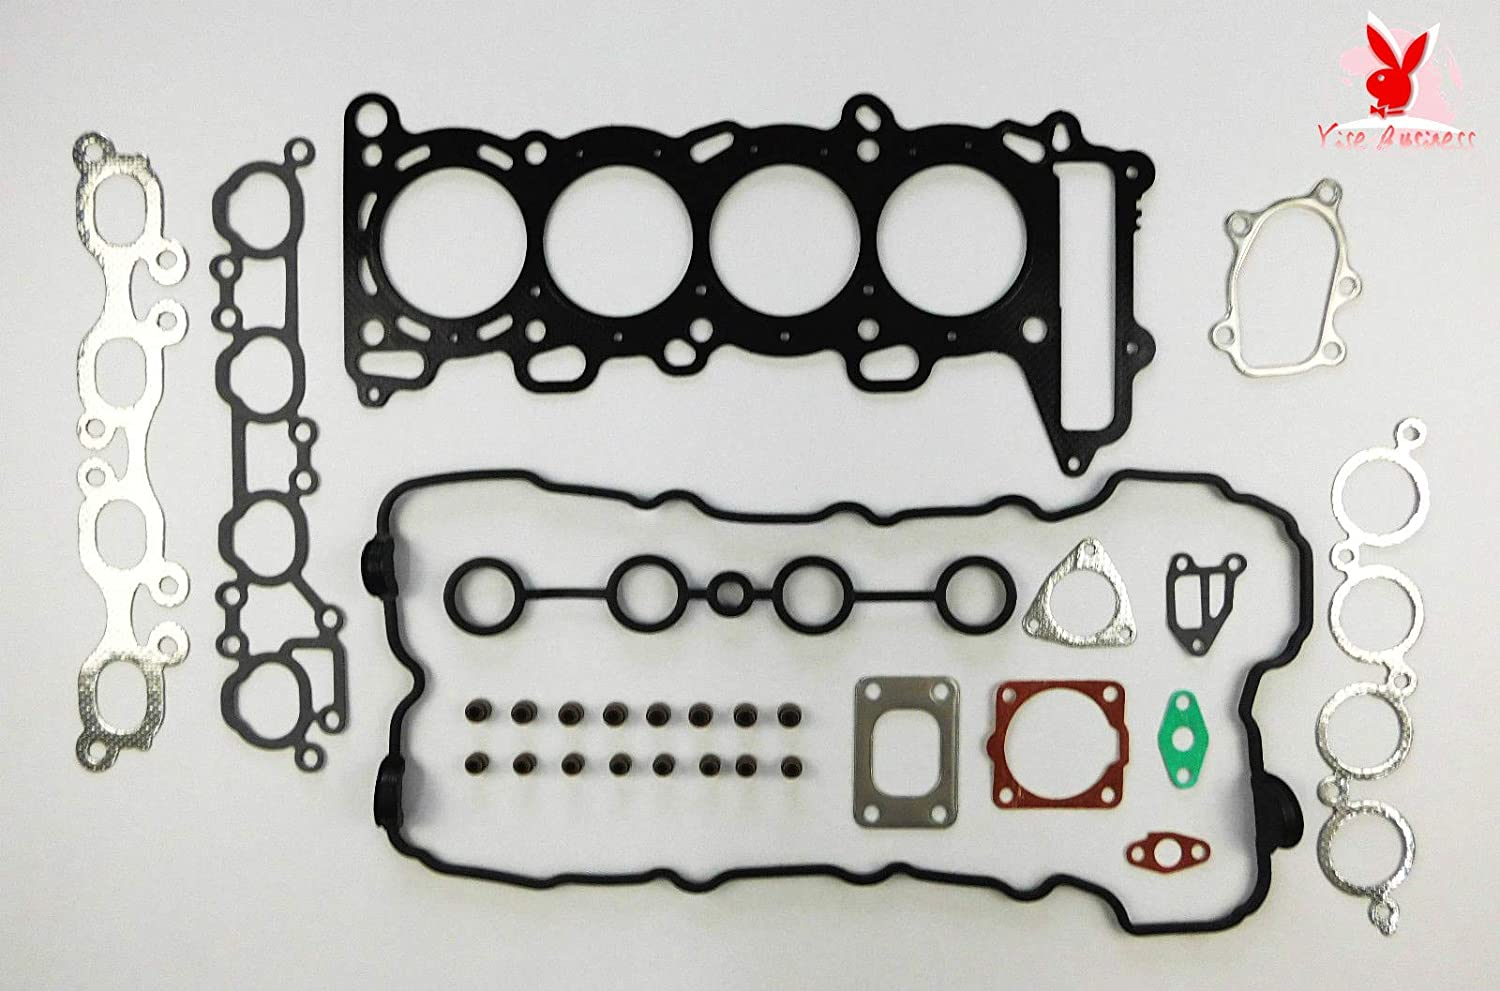 yise-P1418 New HEAD GASKET SET FOR NISSAN 200SX SILVIA PULSAR GTi-R S14 TURBO SR20DET 96 ON VRS DHL 5-9 days can be received